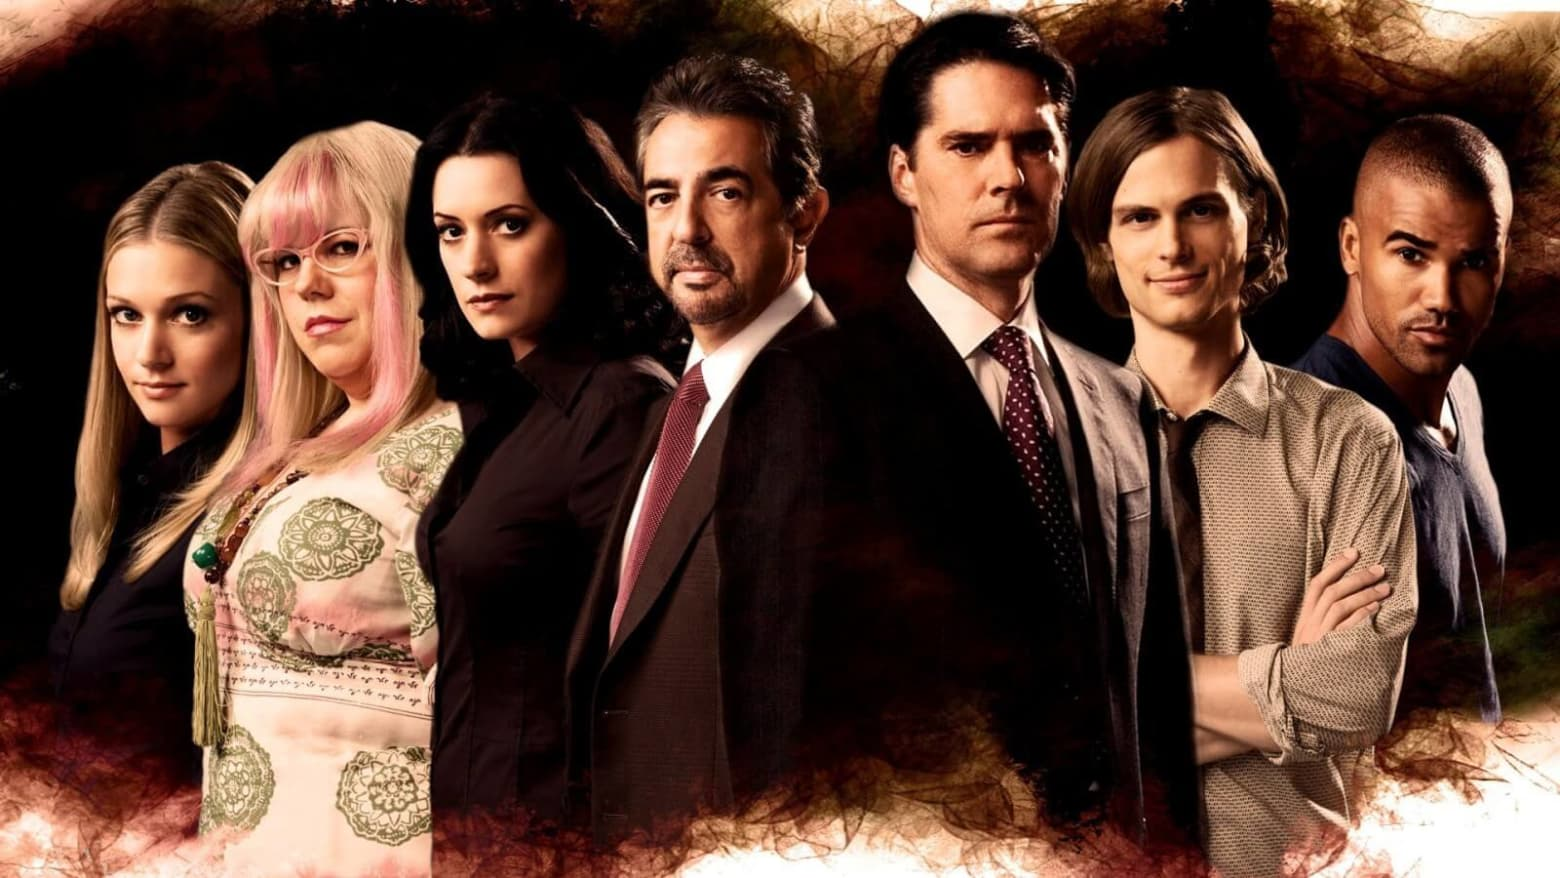 Criminal Minds' Most Memorable Killers | Geeks